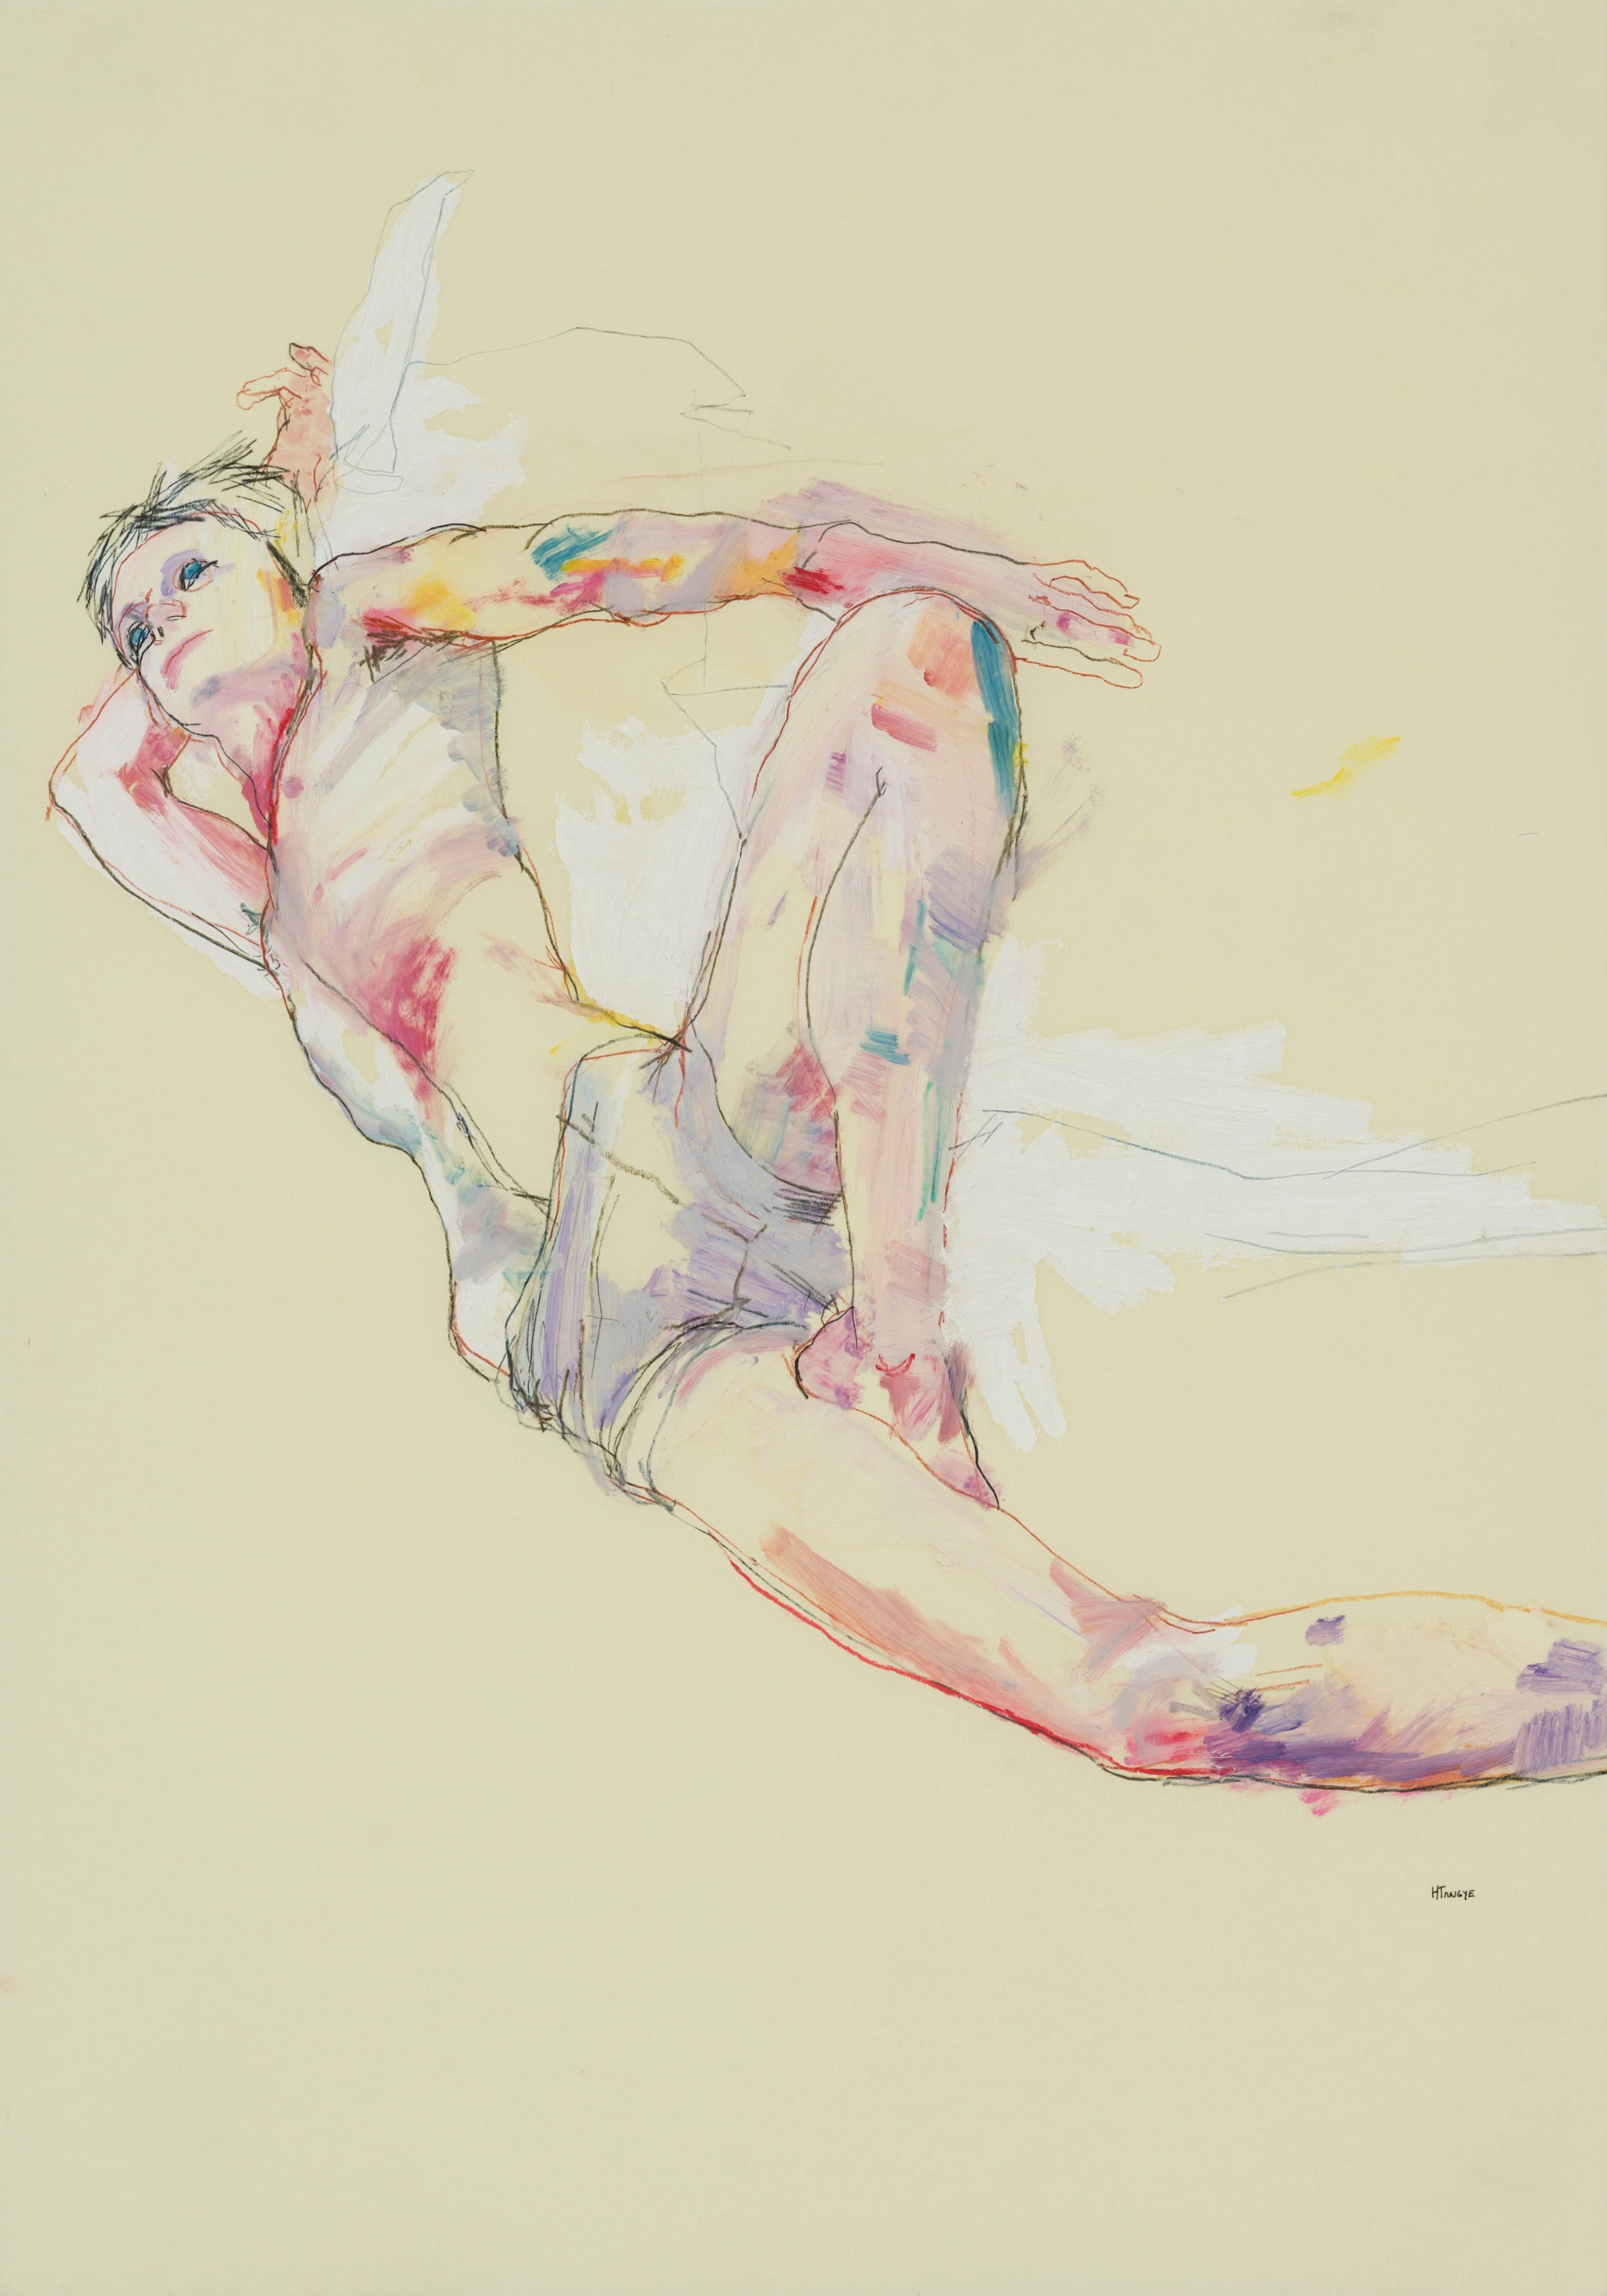 Andrew (Lying Down, Hand Behind Head), Mixed media on Pergamenata parchment